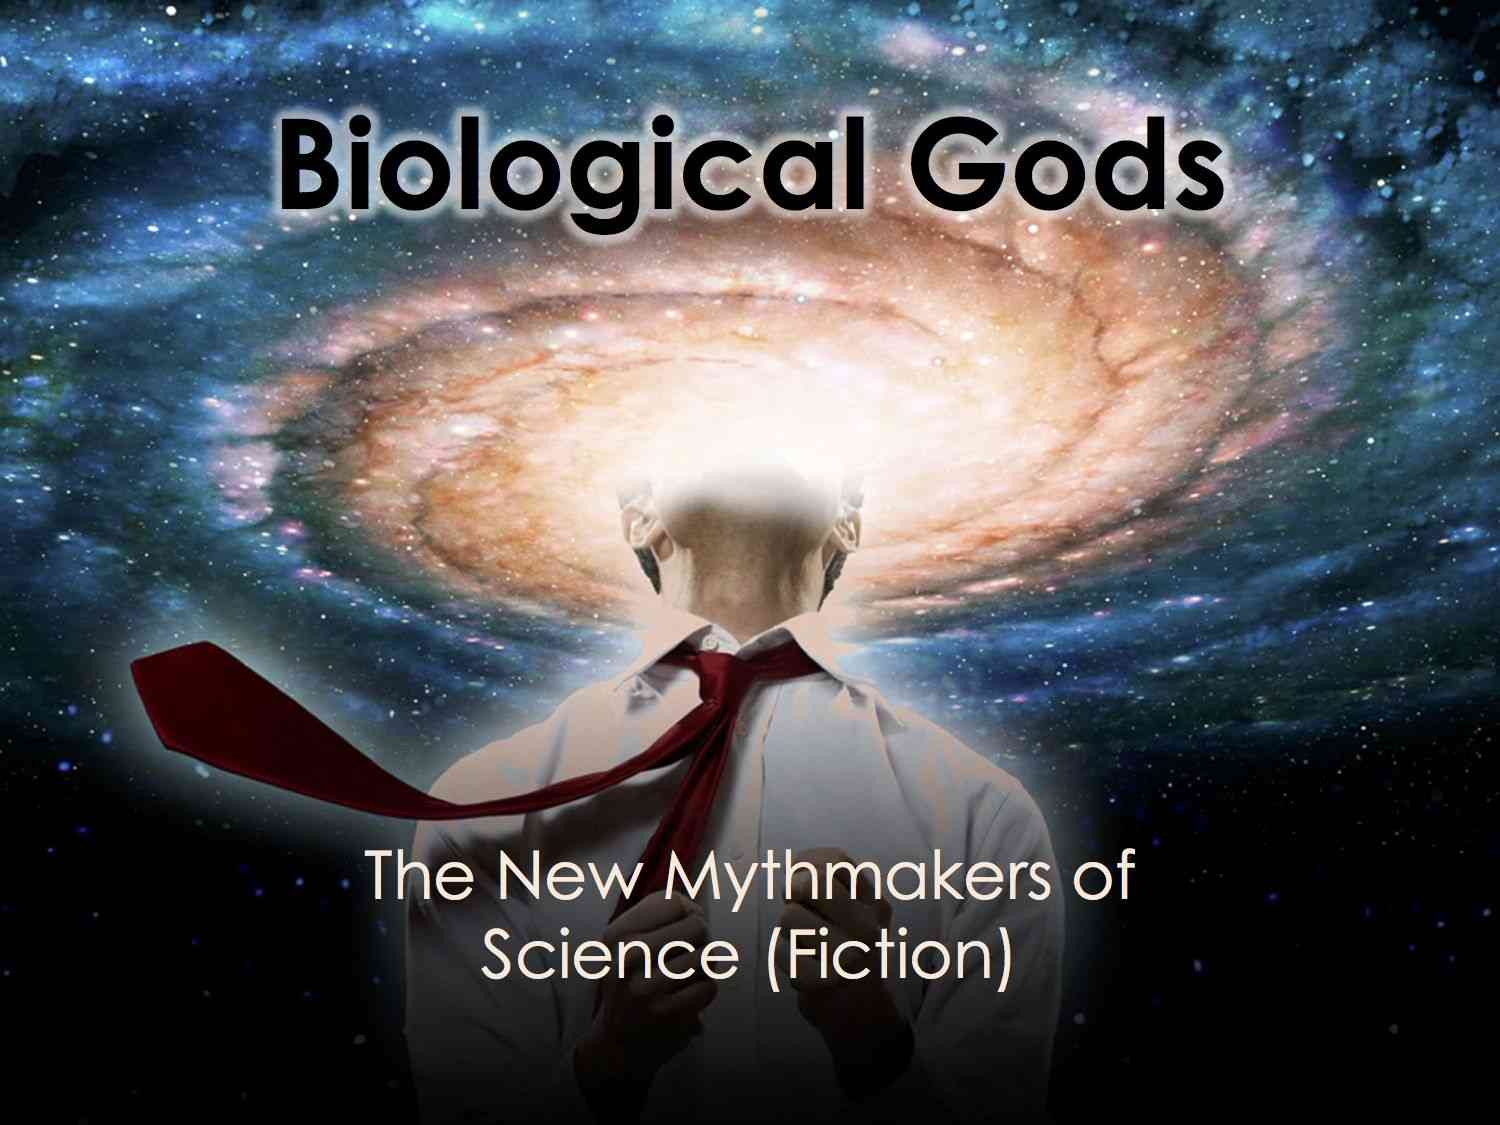 Biological Gods: The New Mythmakers of Science (Fiction)